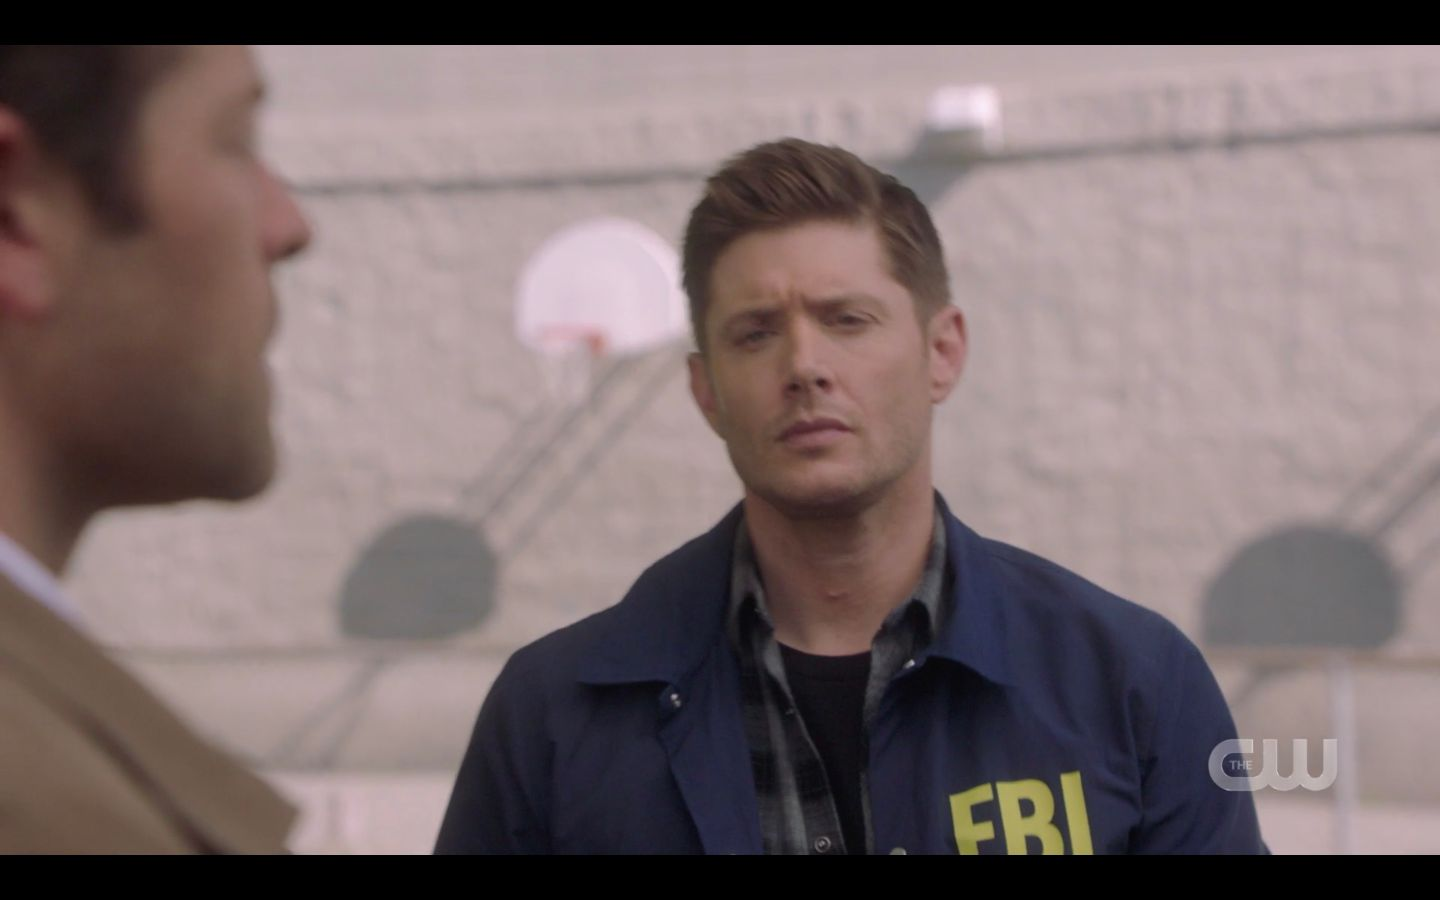 Dean Winchester to Castiel You okay after Belphigor